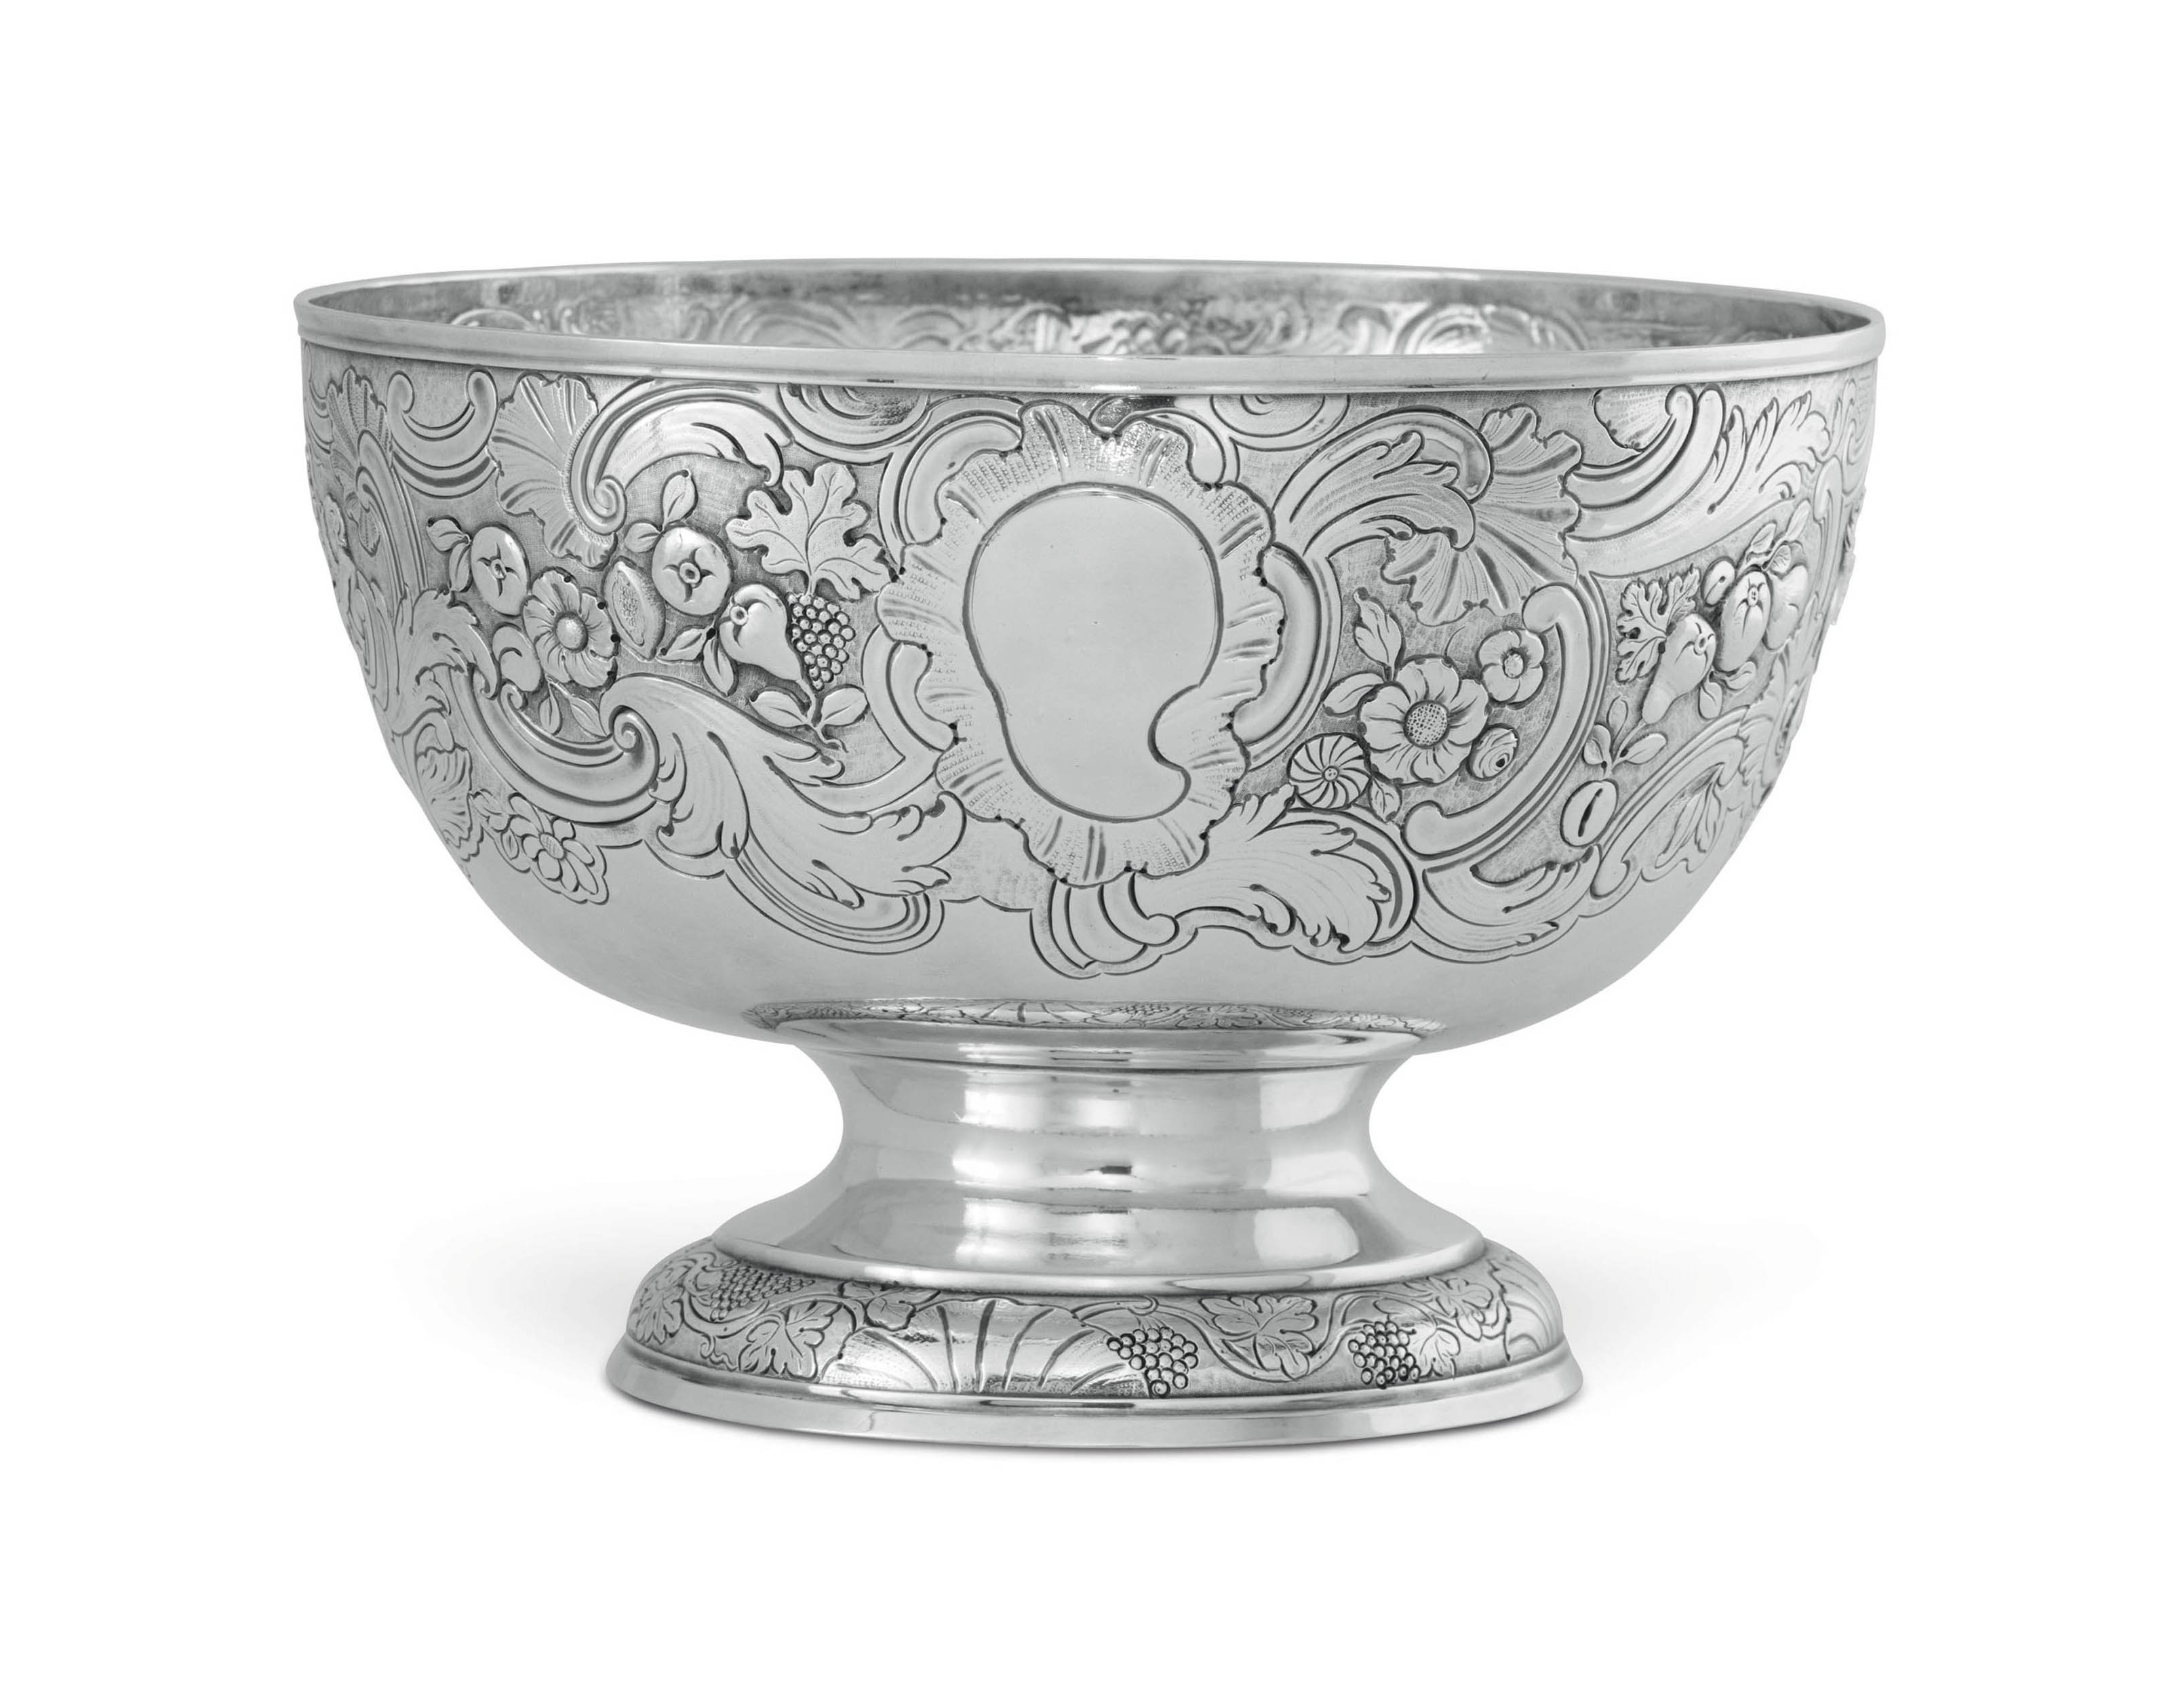 A GEORGE II IRISH SILVER PUNCH BOWL